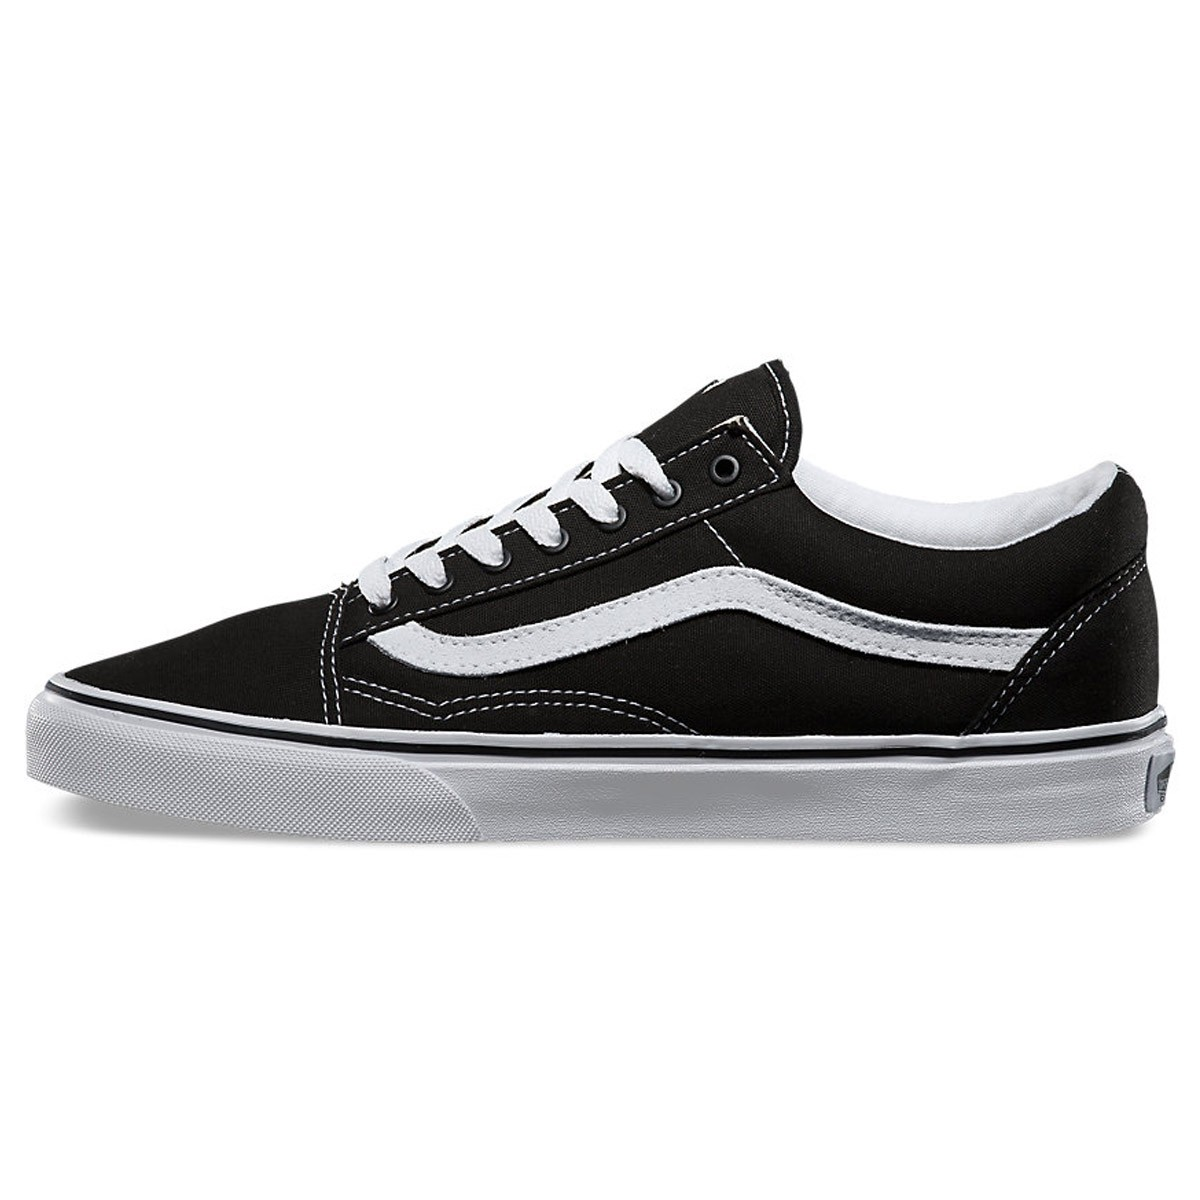 vans old skool core classics. Black Bedroom Furniture Sets. Home Design Ideas